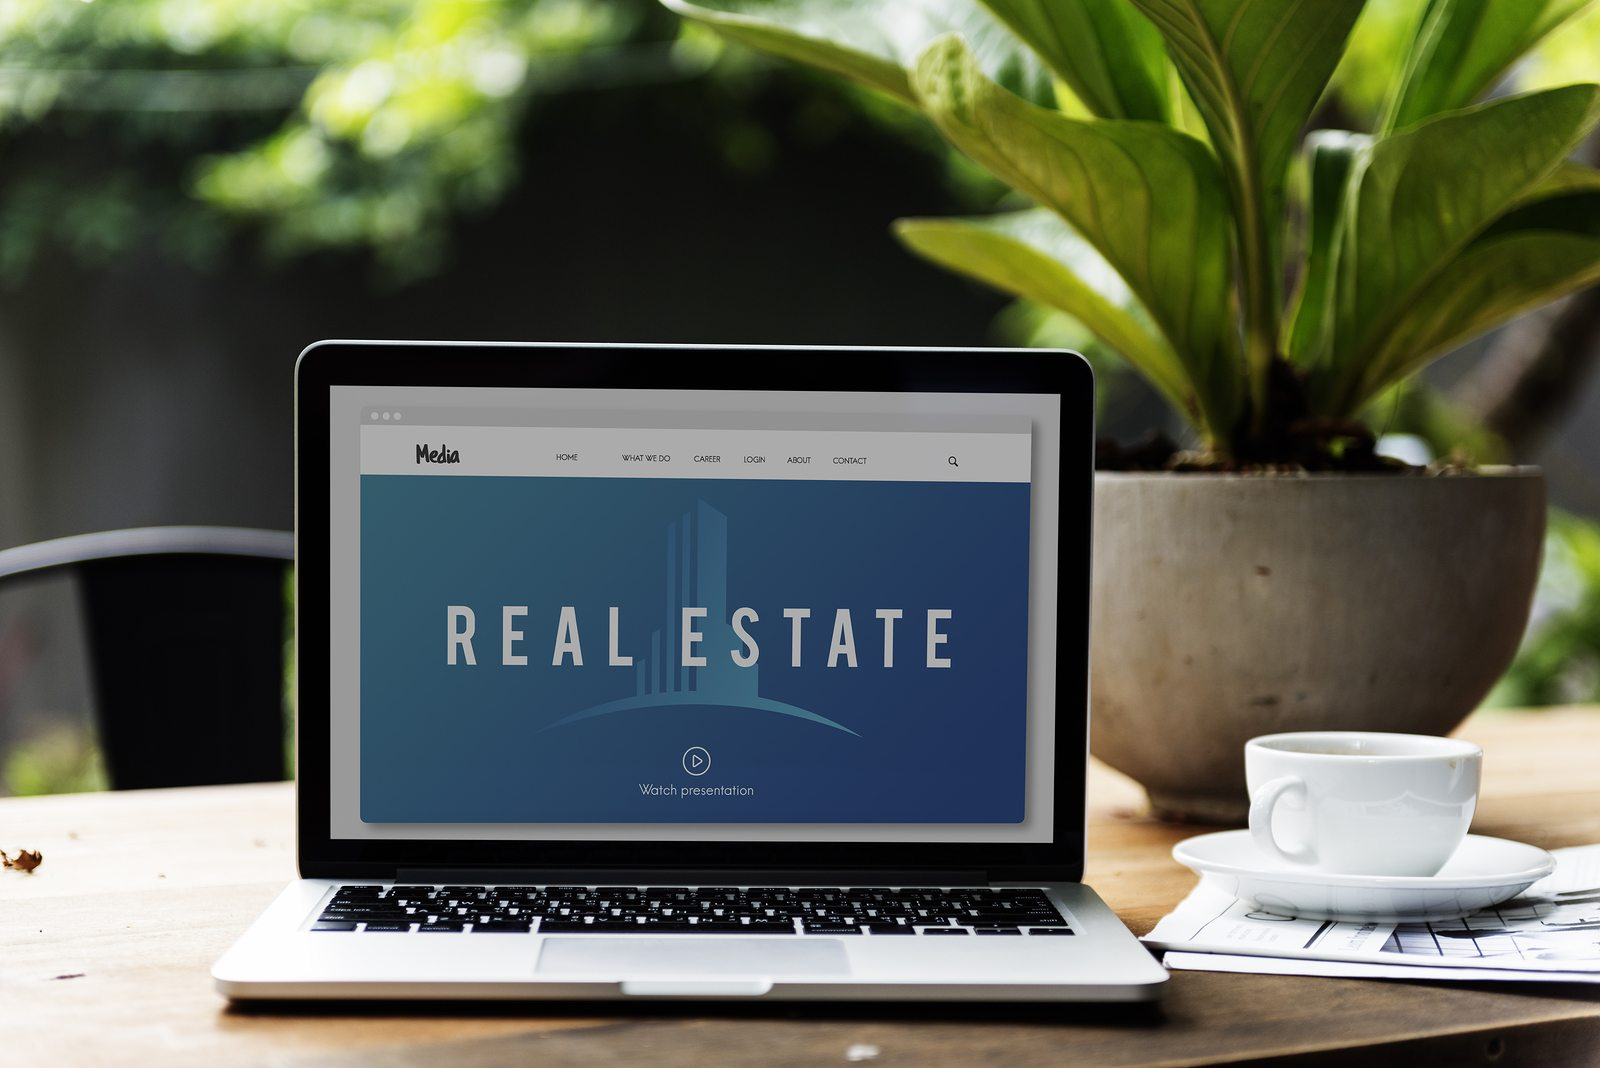 28-Year Commercial Real Estate Veteran Matt Bear Launches Investment Services Firm Bear Real Estate Advisors